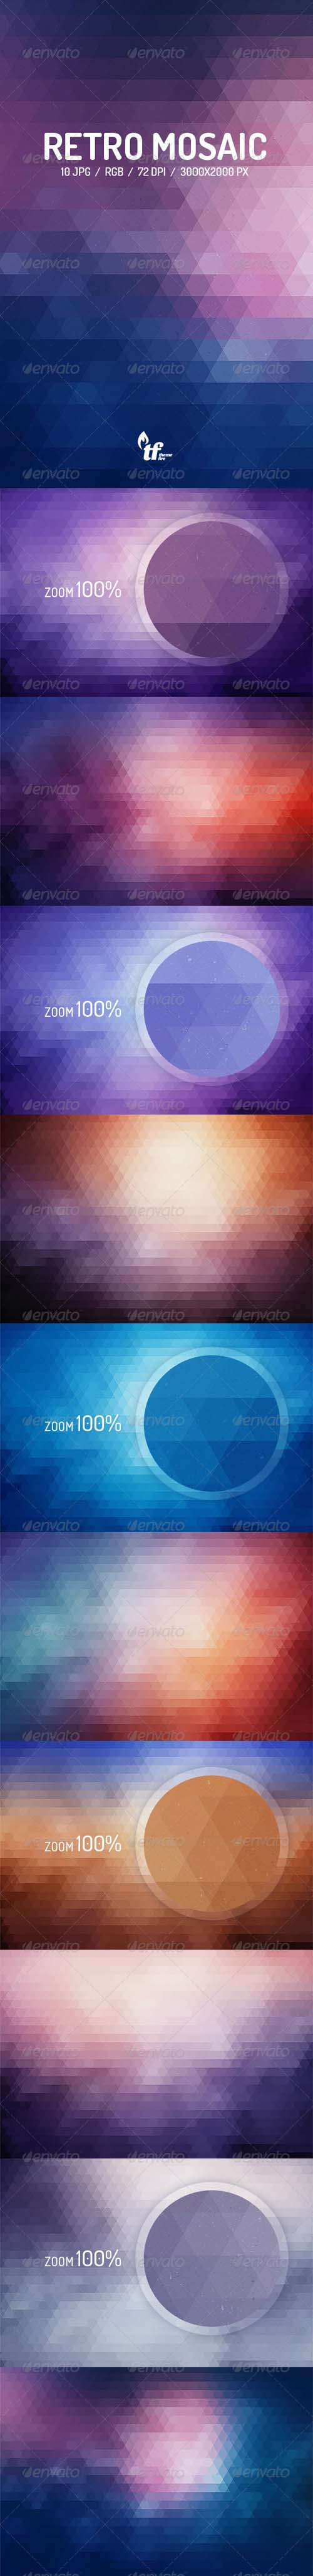 Retro Mosaic Backgrounds 8748146